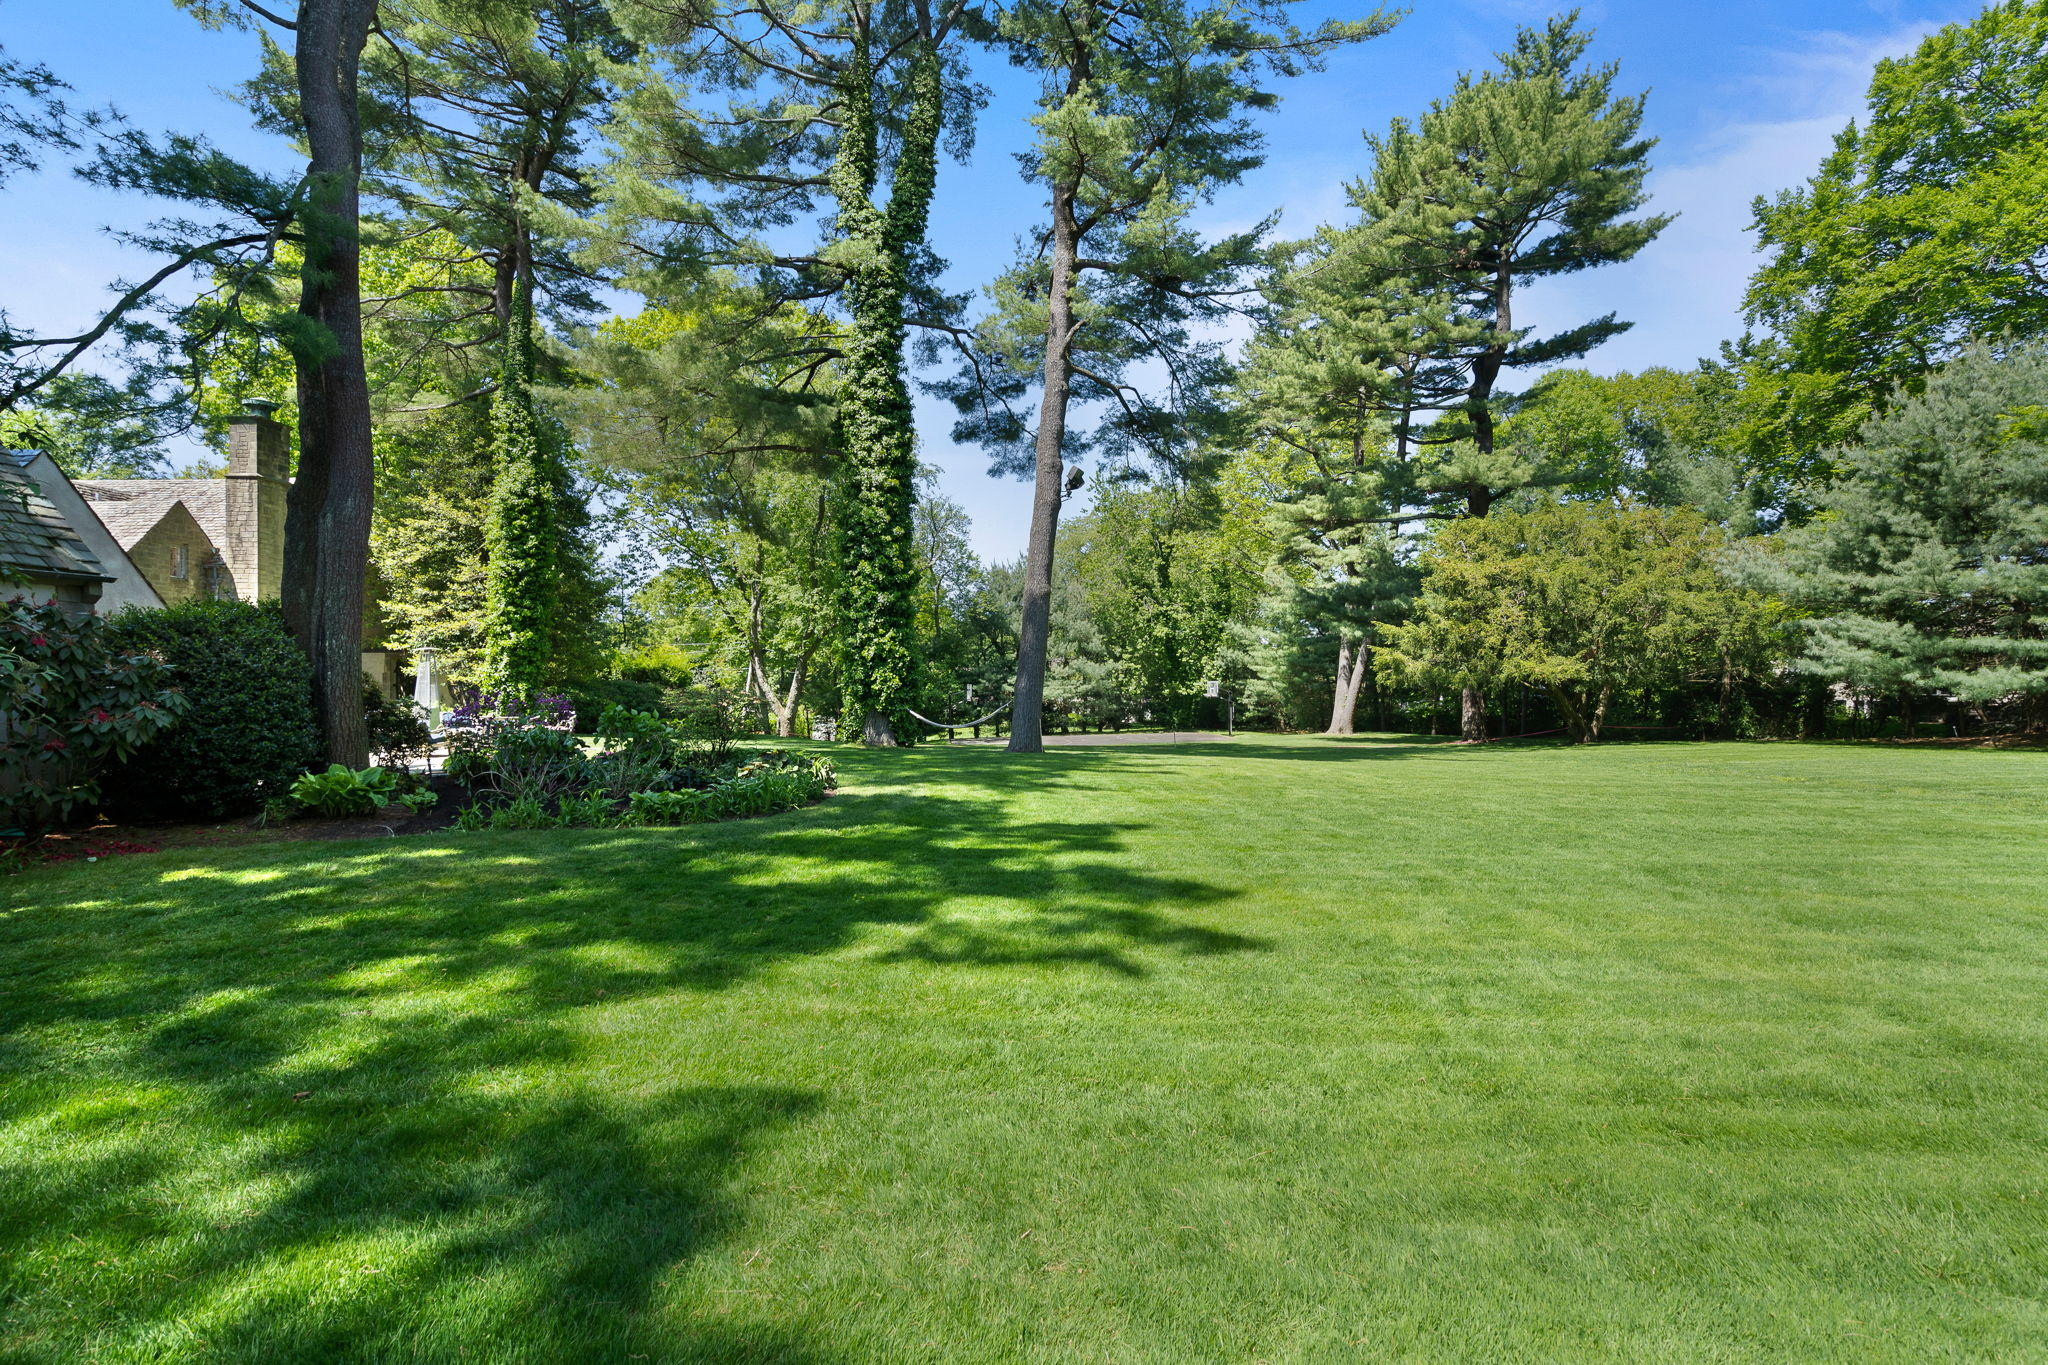 2a Melby Ln, East Hills, NY 11576, US Photo 86